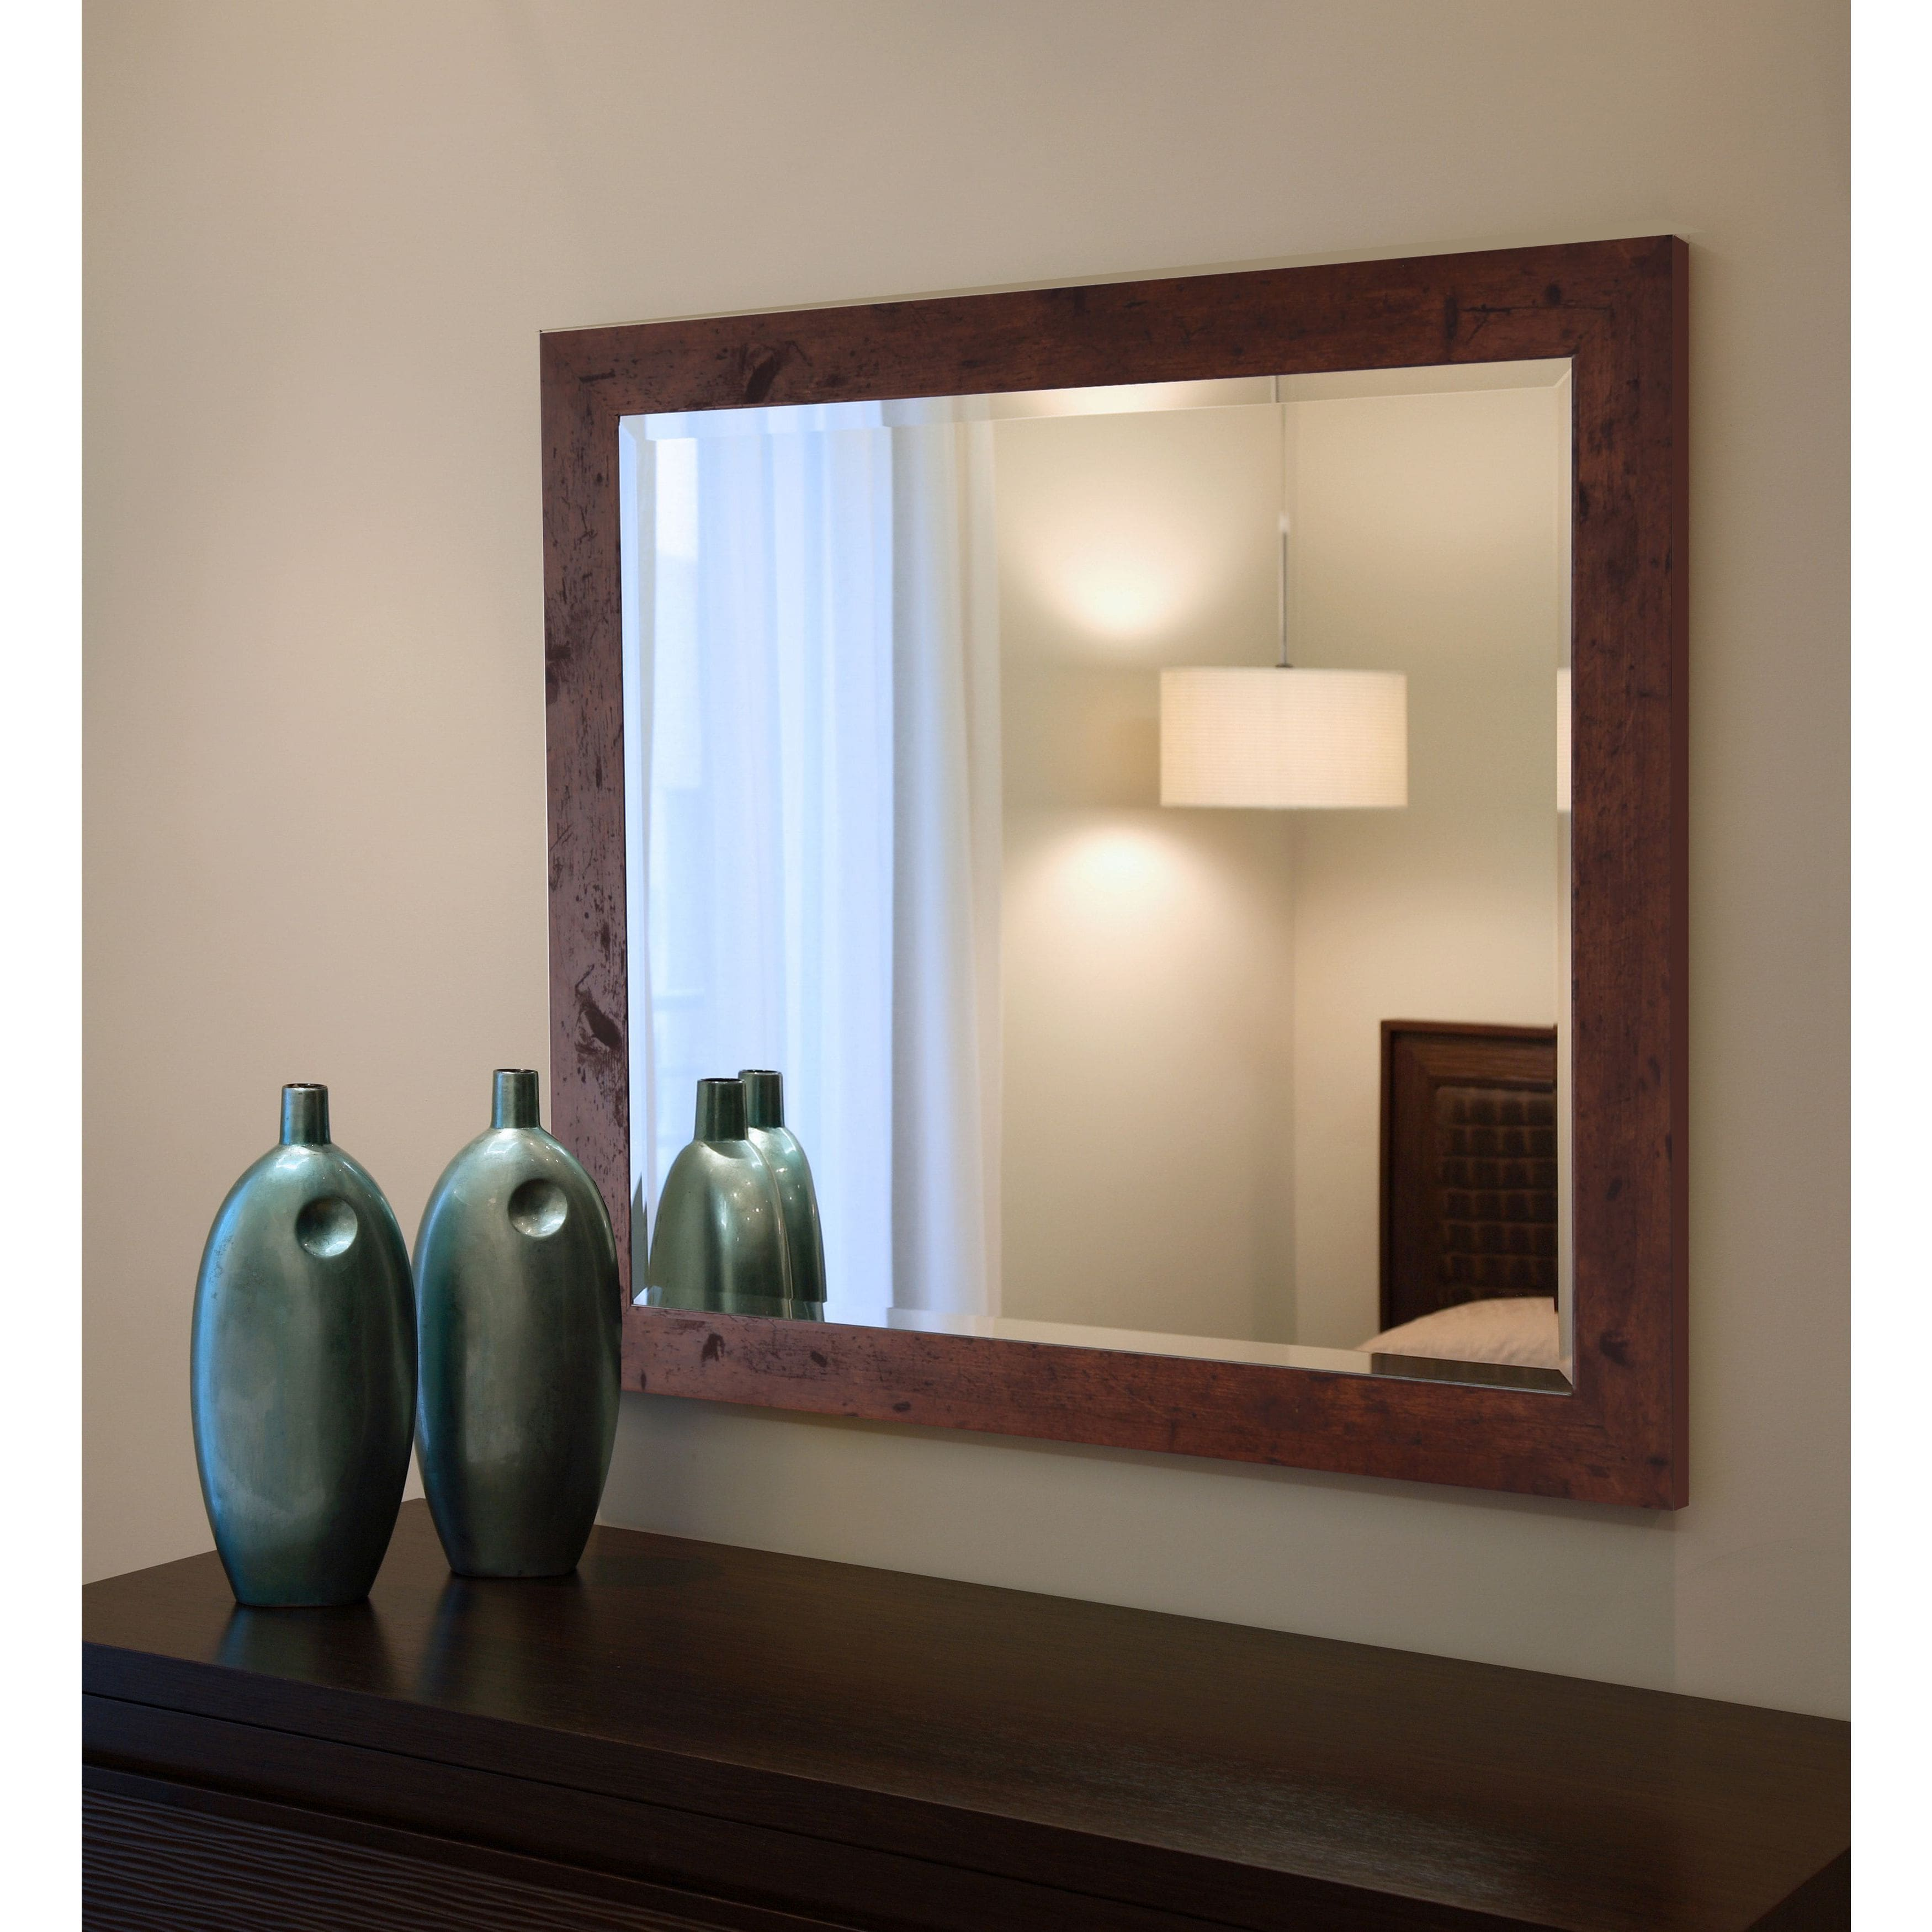 Rayne Mirrors American Made Rayne Rustic Dark Walnut Wall/ Vanity Mirror - Dark Walnut